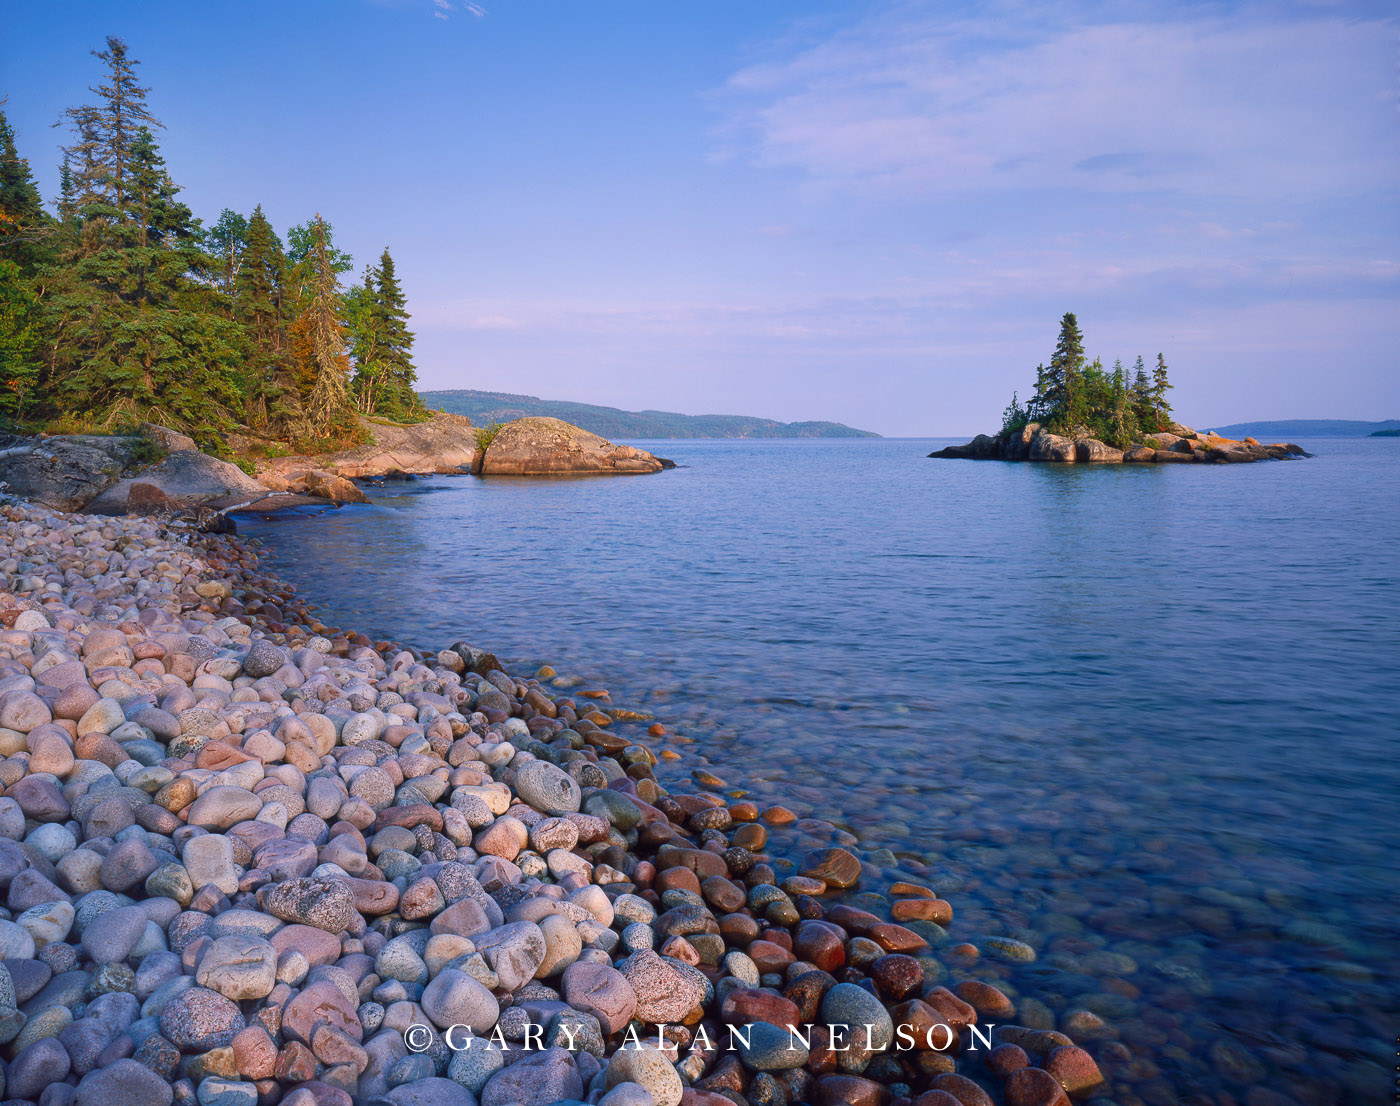 Rainbow Falls Provincial Park, Ontario, Canada, lake superior, rocks, island, photo